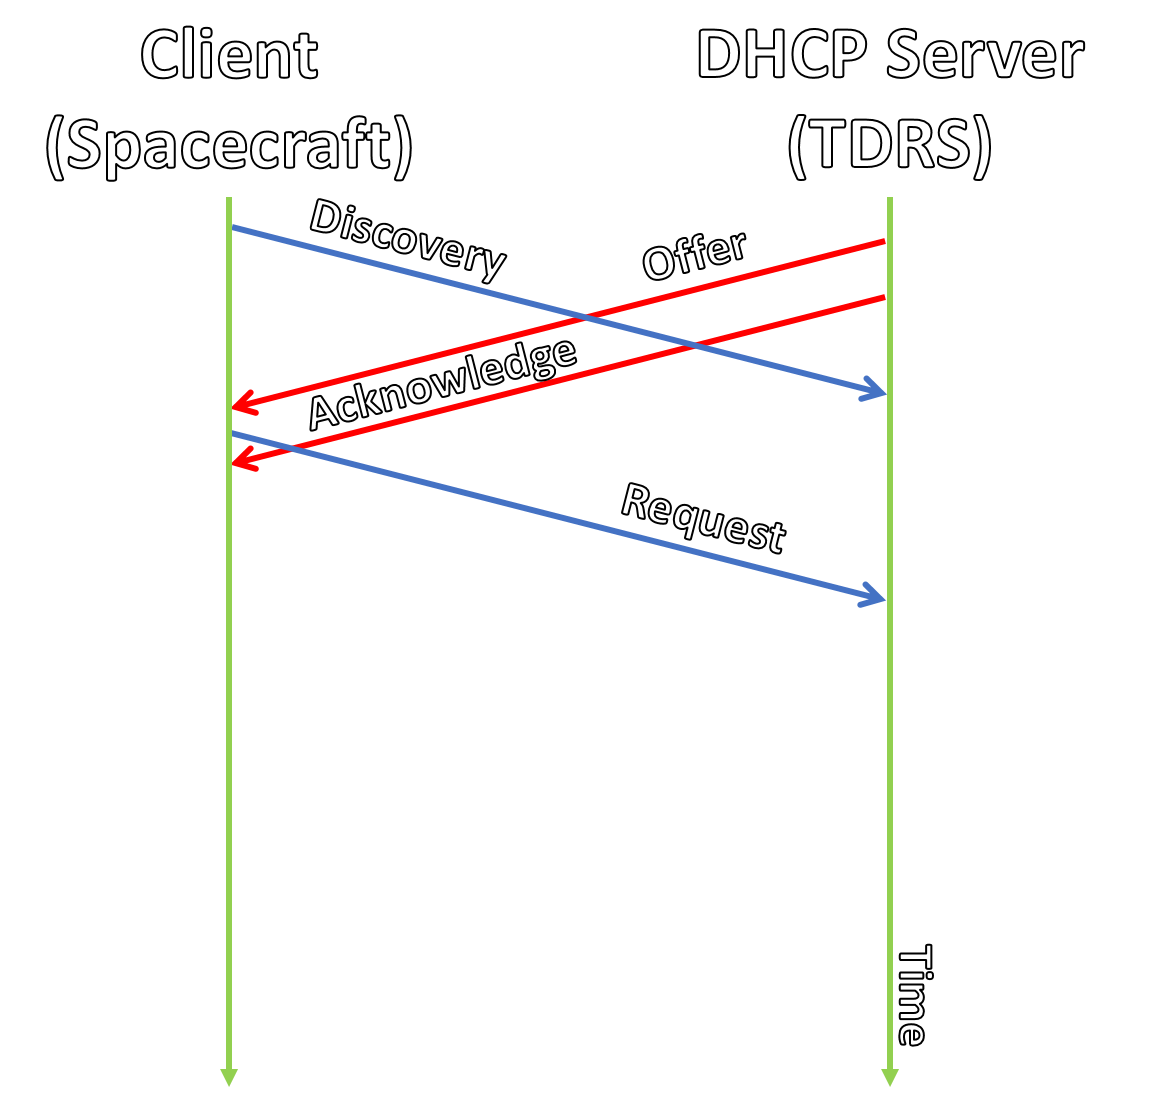 Pipelined DHCP